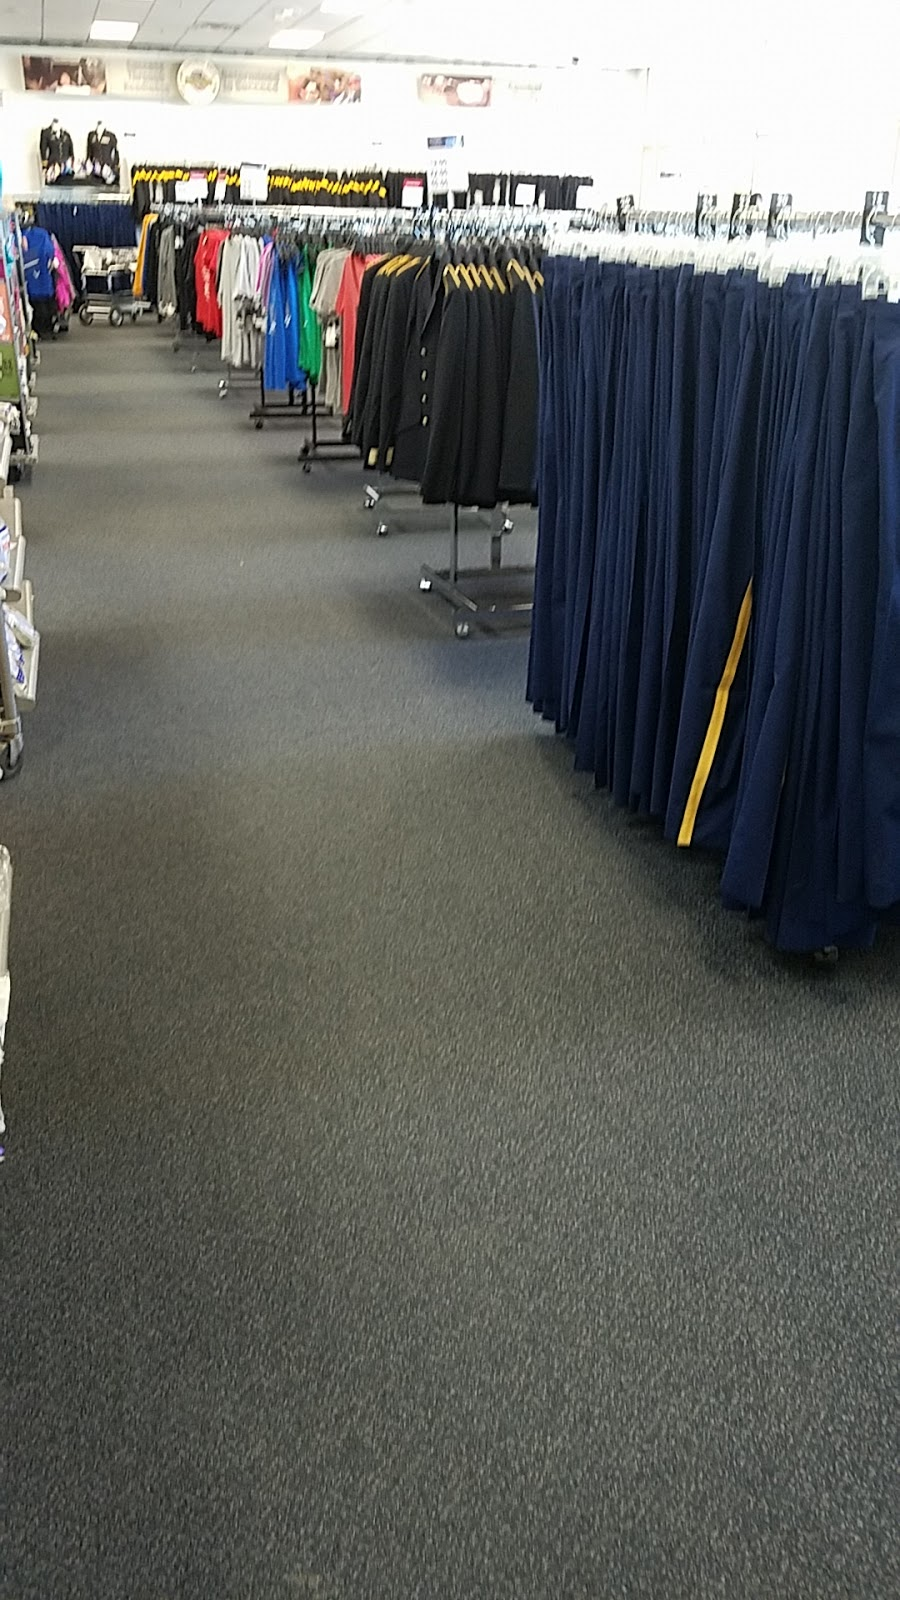 Military Clothing Sales - clothing store  | Photo 4 of 7 | Address: 1614 Pike Rd, Fort Bliss, TX 79906, USA | Phone: (915) 568-2880